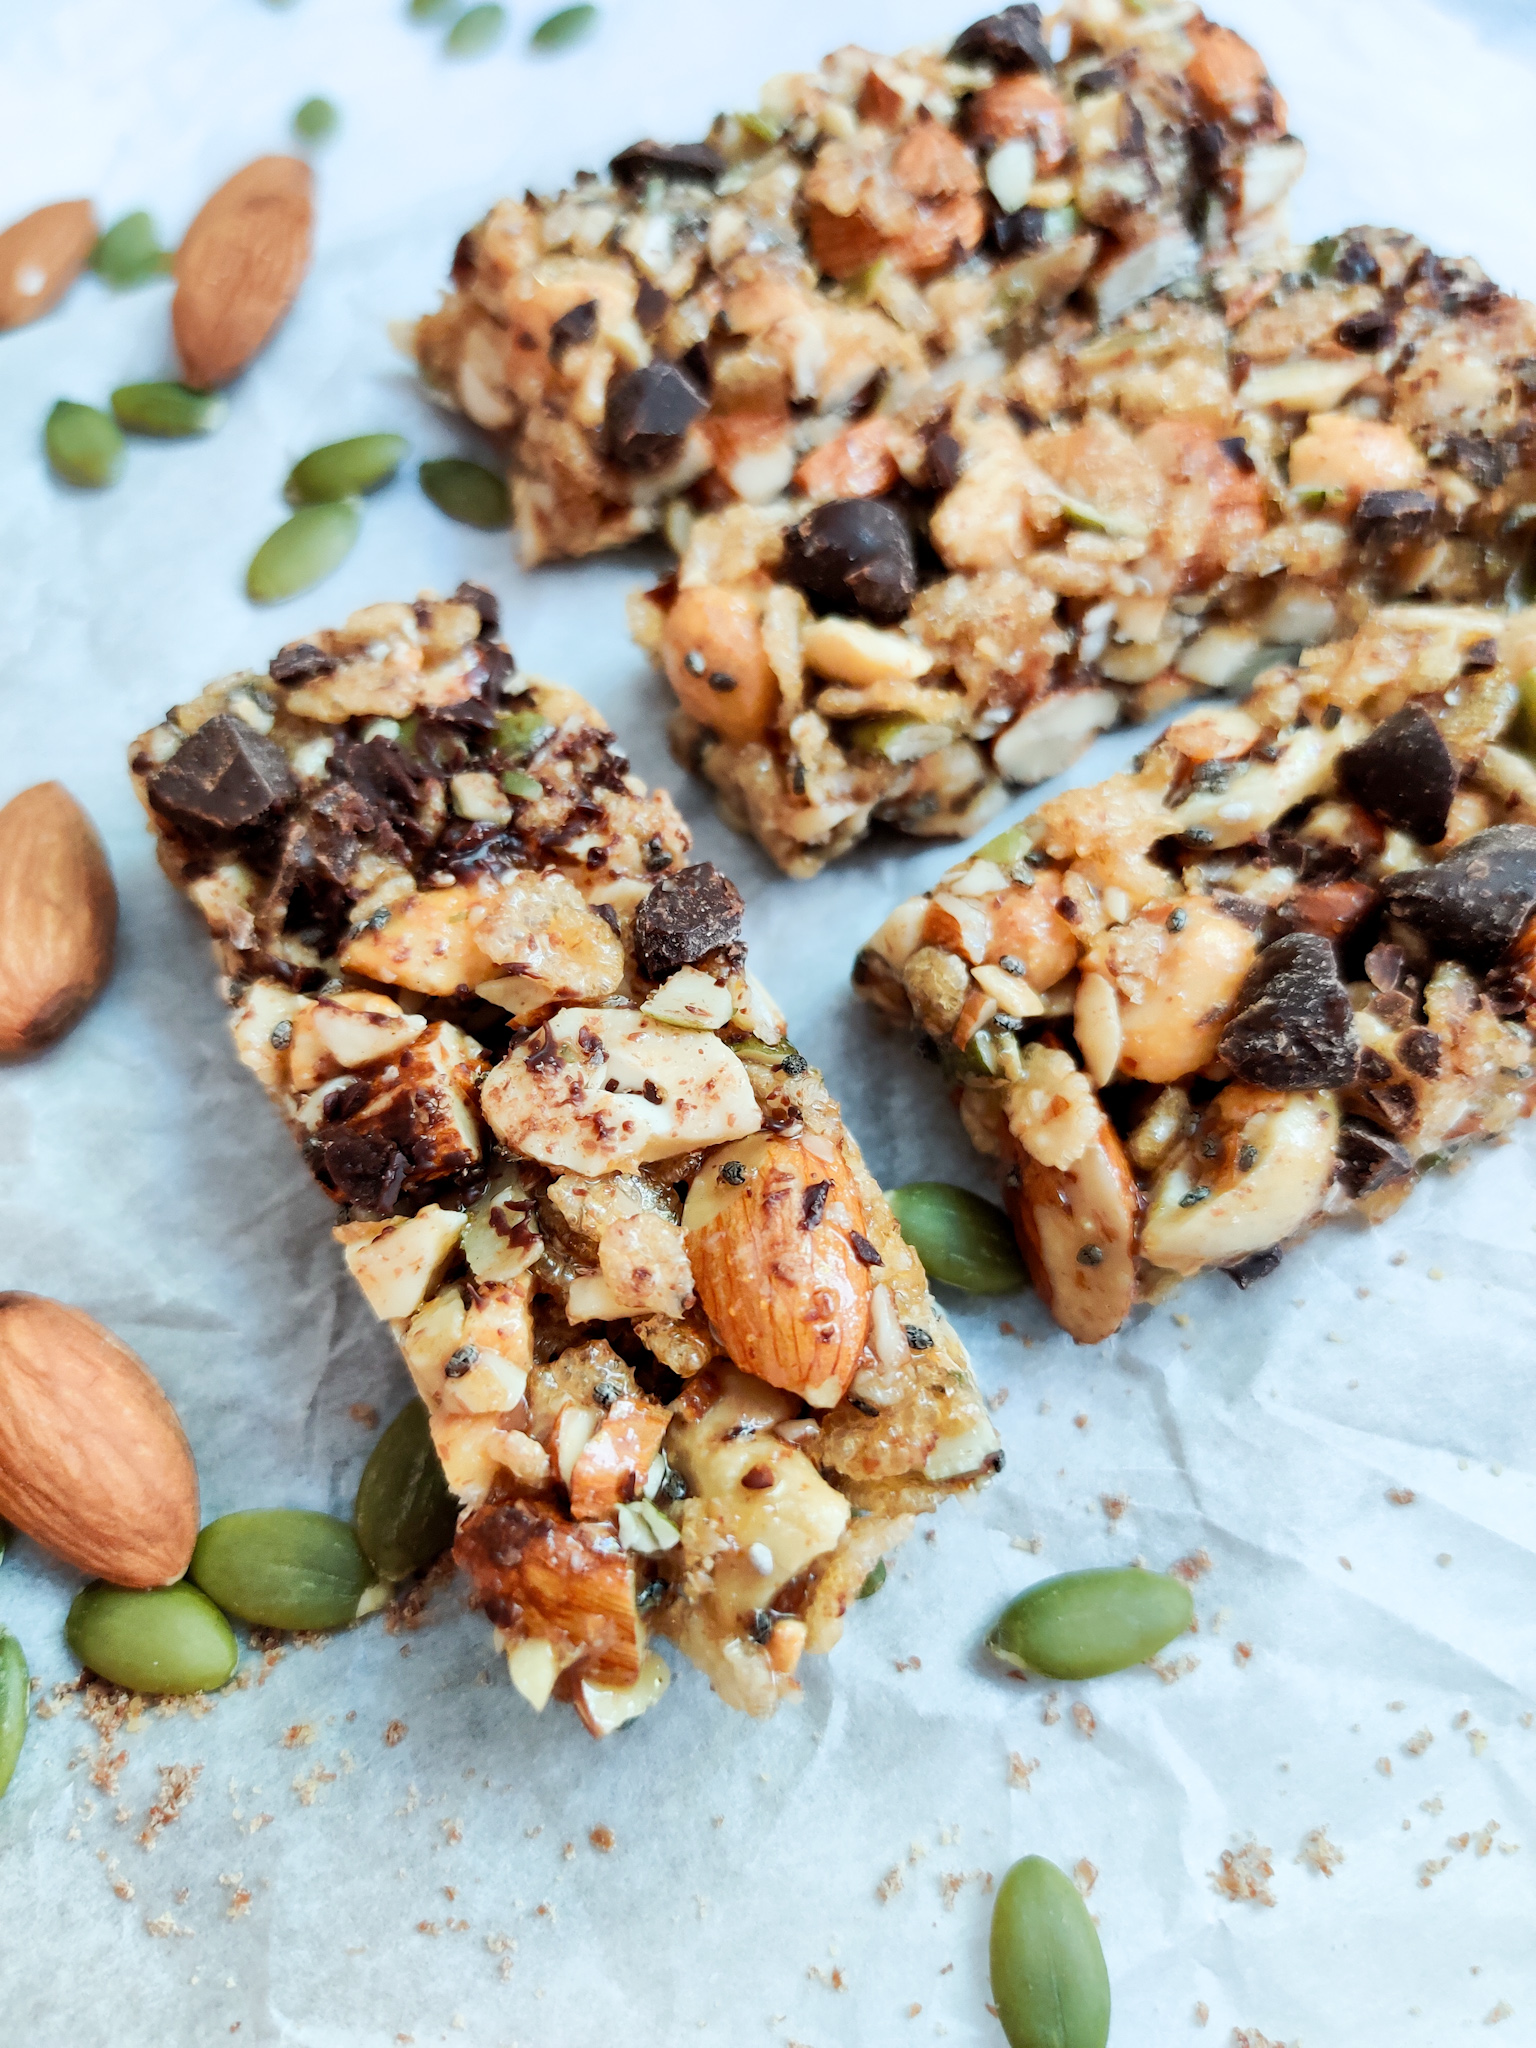 Chewy Nut and Seed Bars